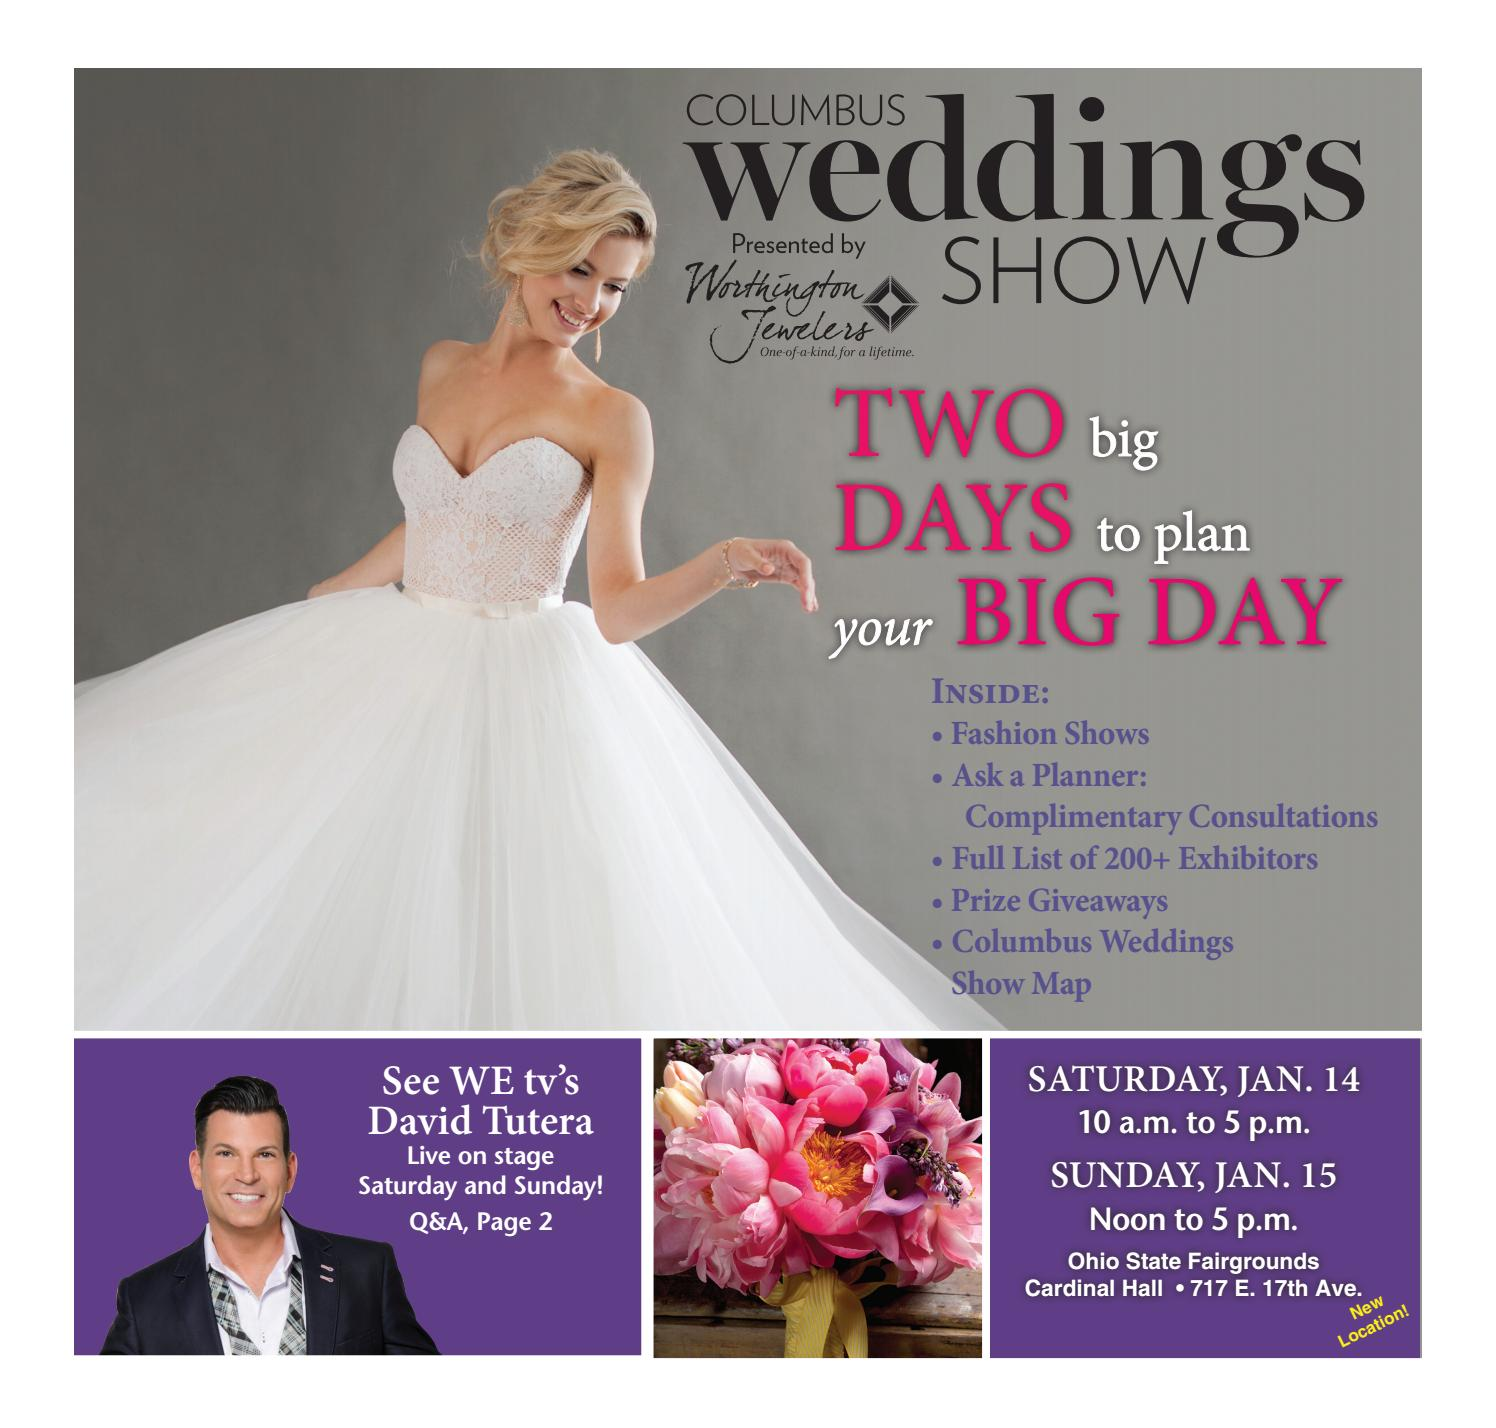 2017 Columbus Weddings Show by The Columbus Dispatch - issuu